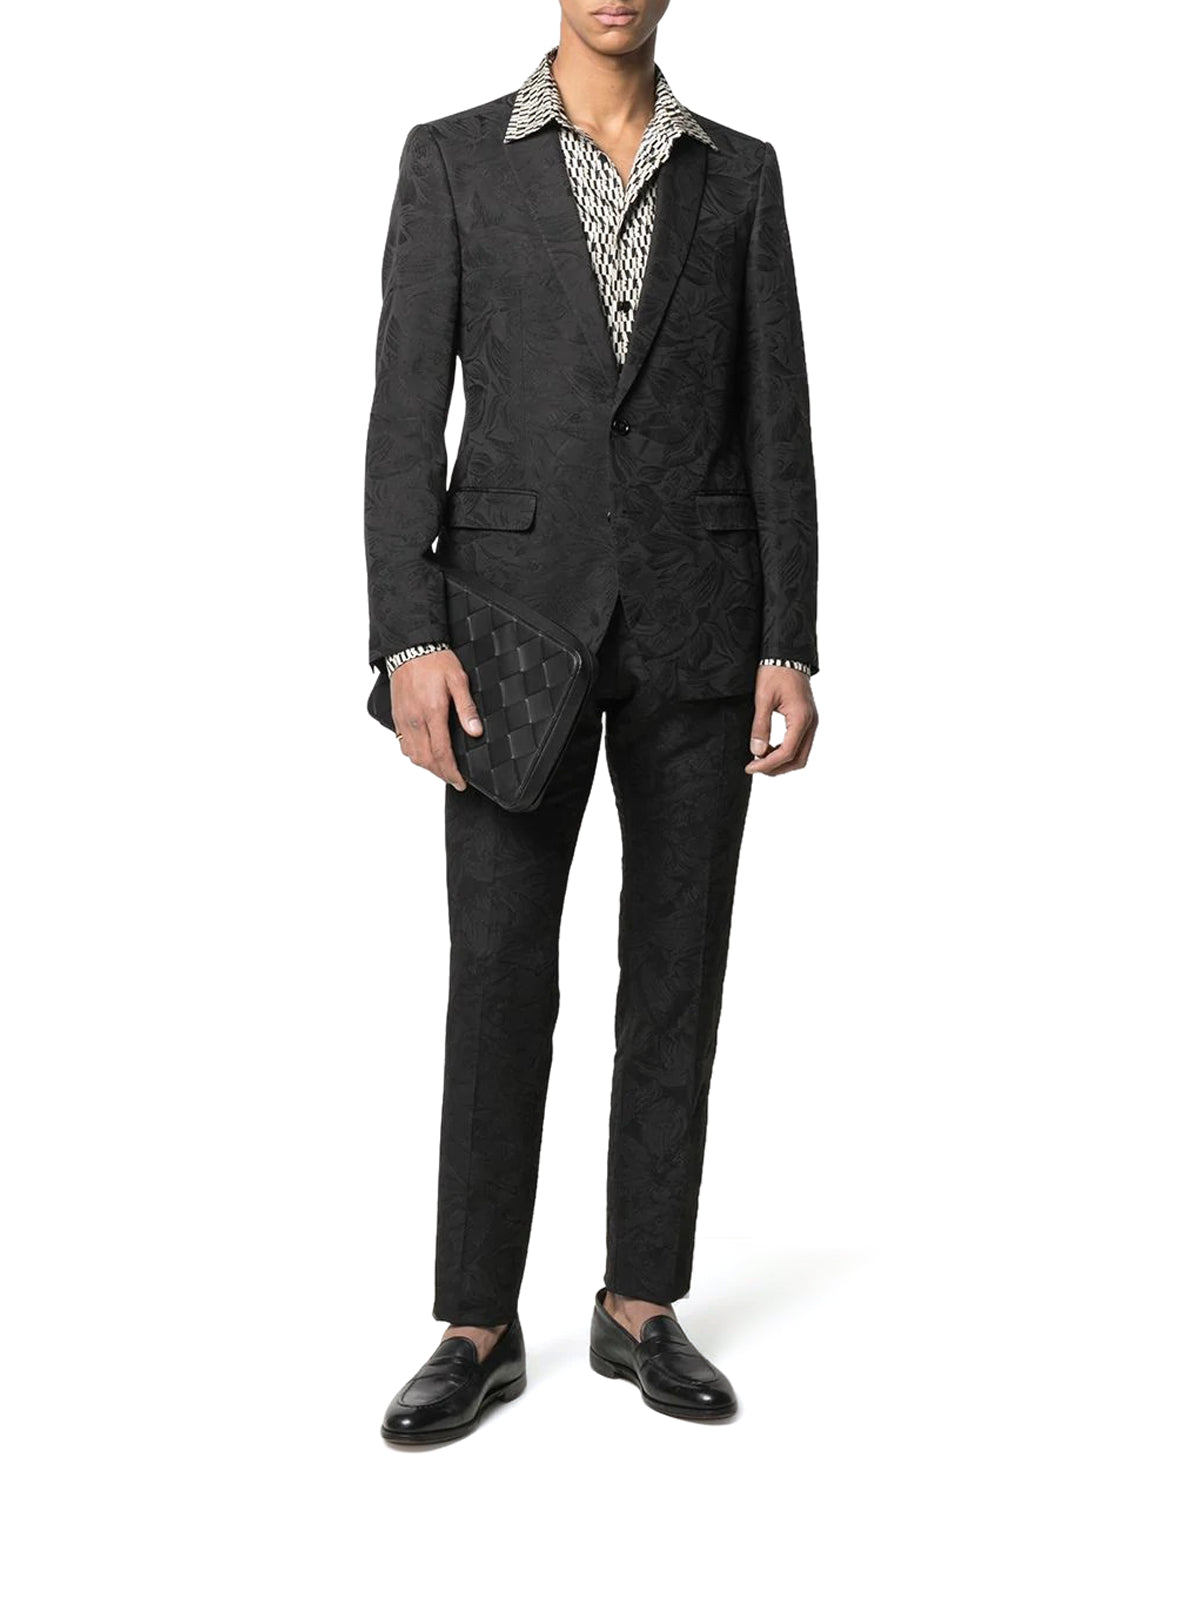 floral jacquard martini two-piece suit